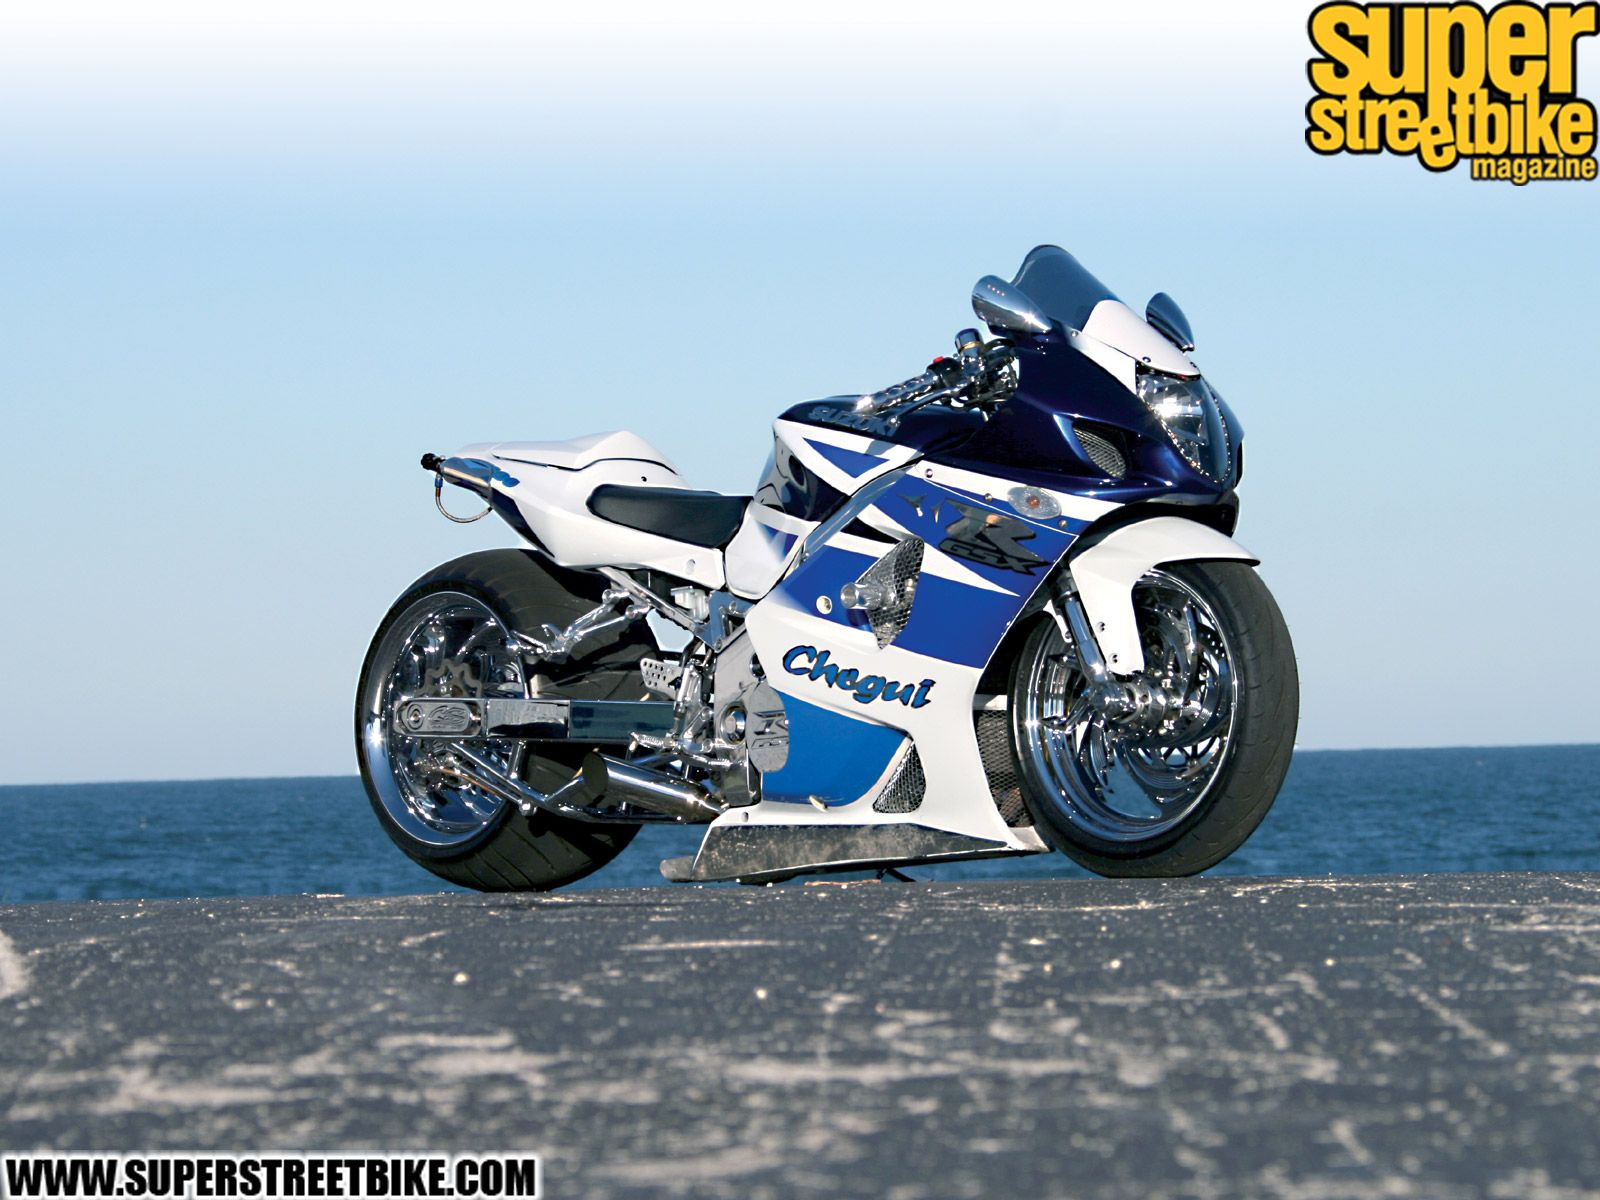 suzuki gsx r1000 k3 tuning 10 motorcycles motorcycle. Black Bedroom Furniture Sets. Home Design Ideas